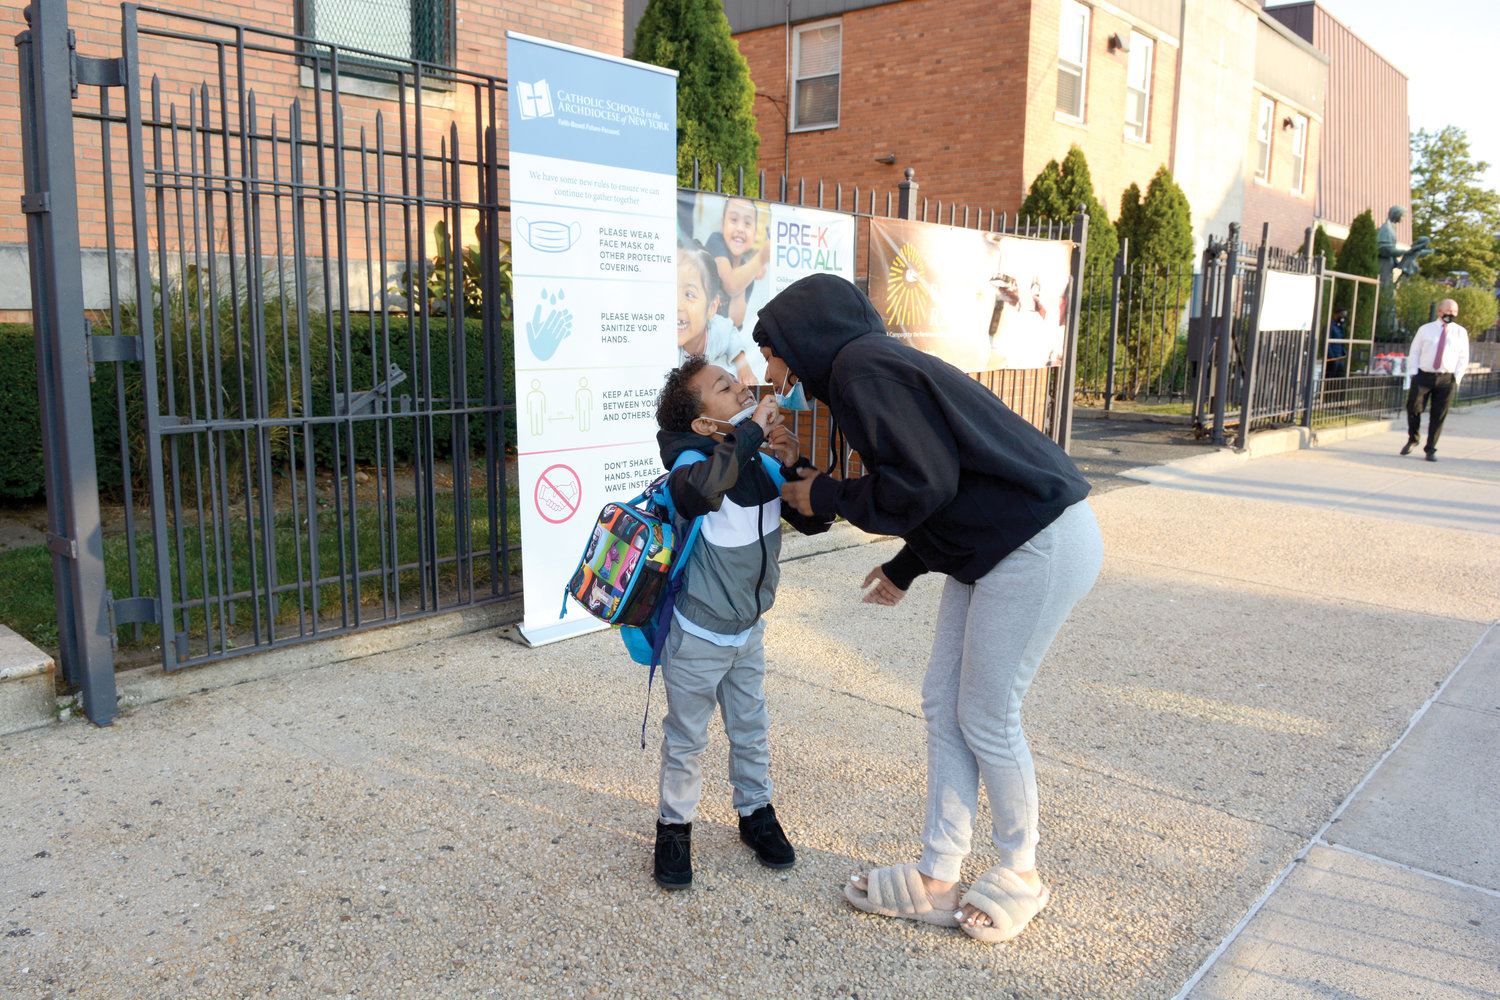 Chelsea Thompson kisses her son, first-grader Chase Torres, before she drops him off at Our Lady of Grace School in the Bronx on the morning of Sept. 22. Our Lady of Grace and other Catholic schools throughout the archdiocese have opened for the 2020-2021 school year.